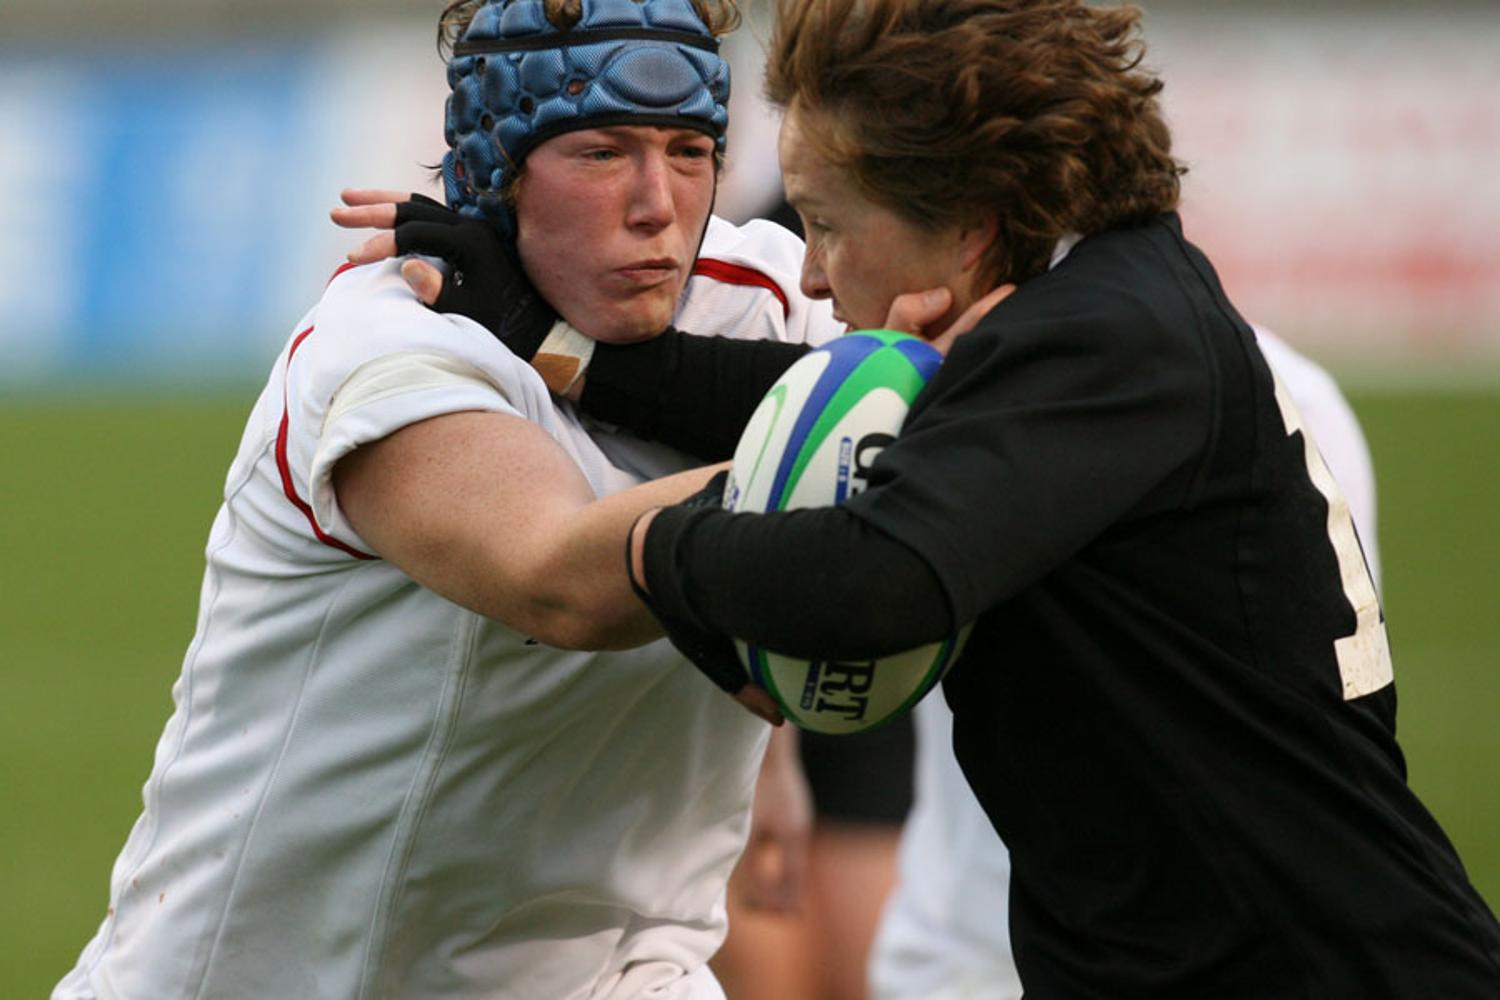 WRWC 2006: Rochelle Clark of England and Anna Richards of New Zealand battle for the ball